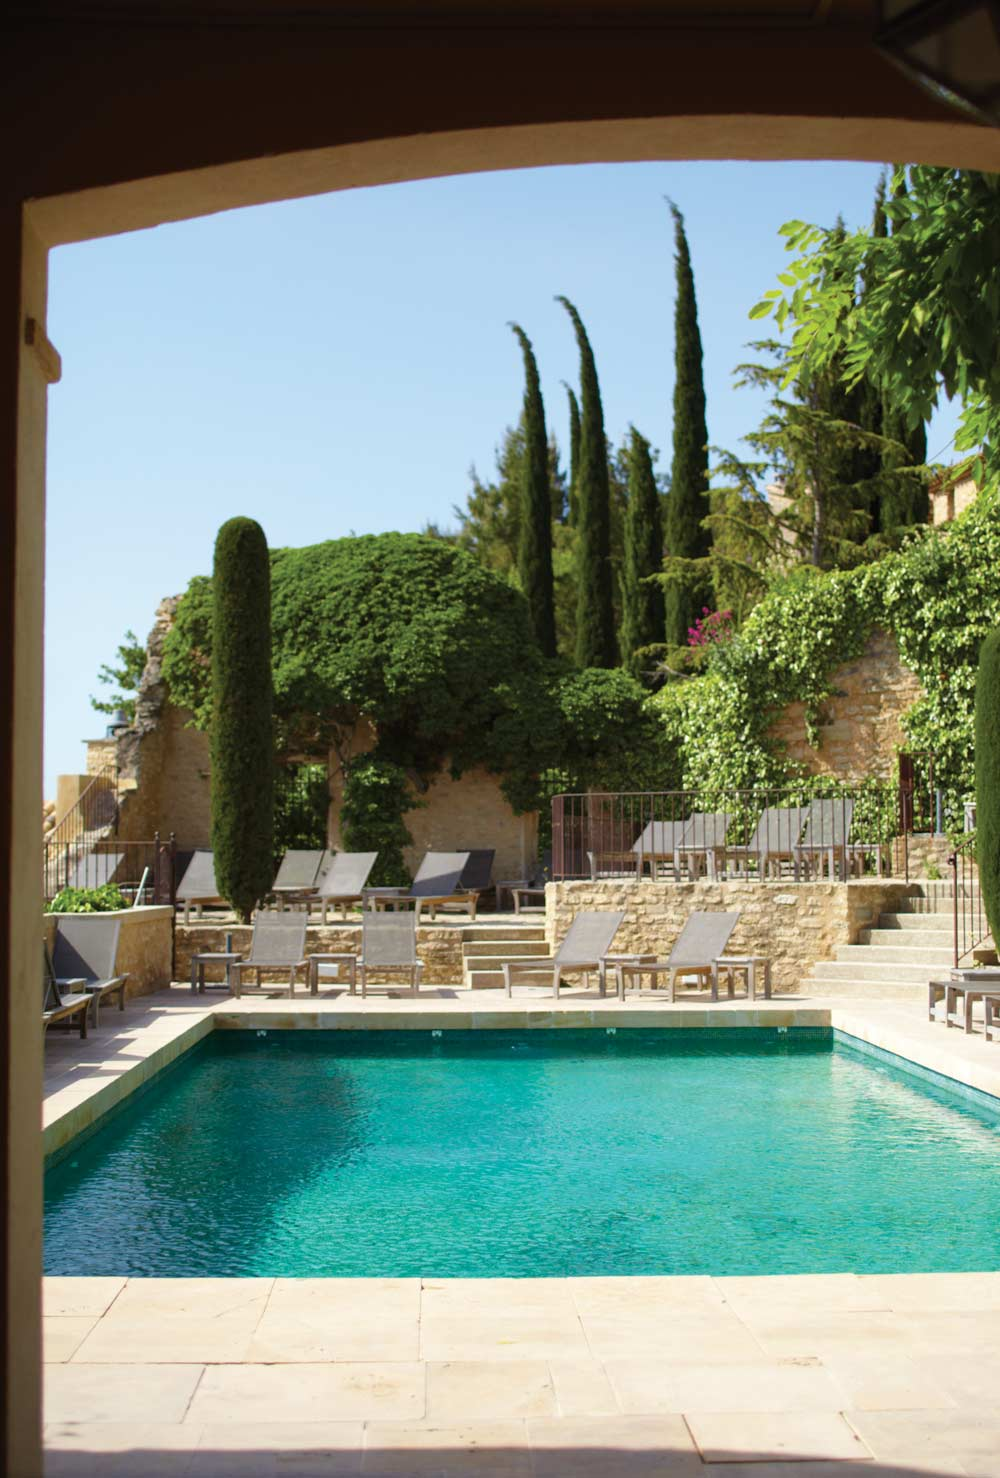 Outdoor Pool at Hotel Crillon Le Brave